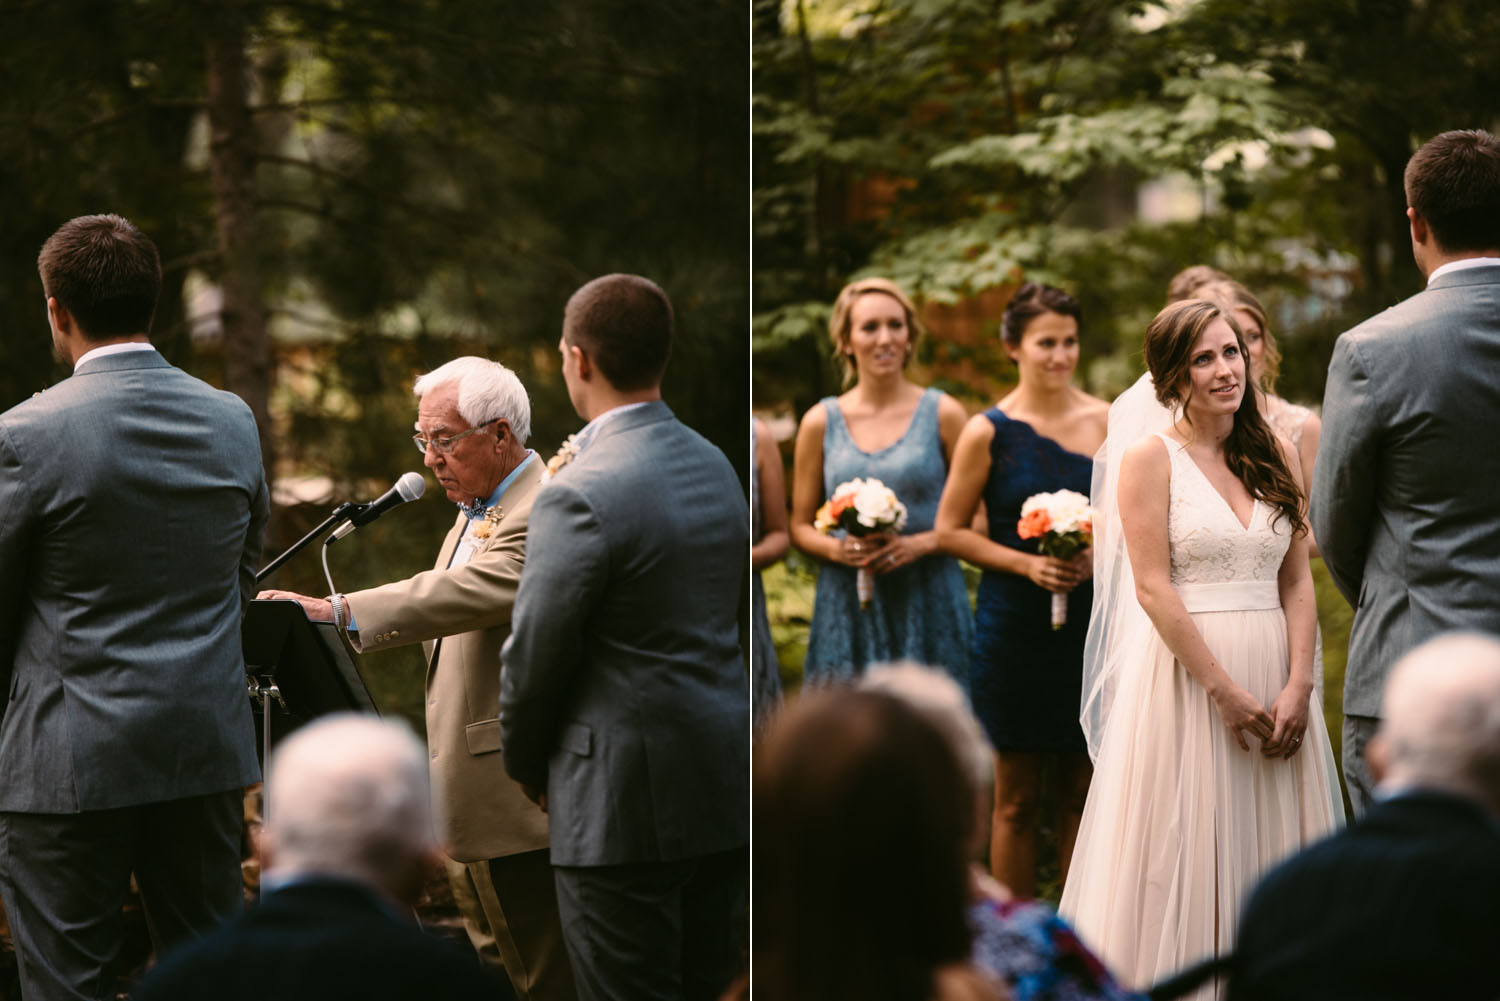 backyard-wedding-ceremony-photography-minnesota.jpg